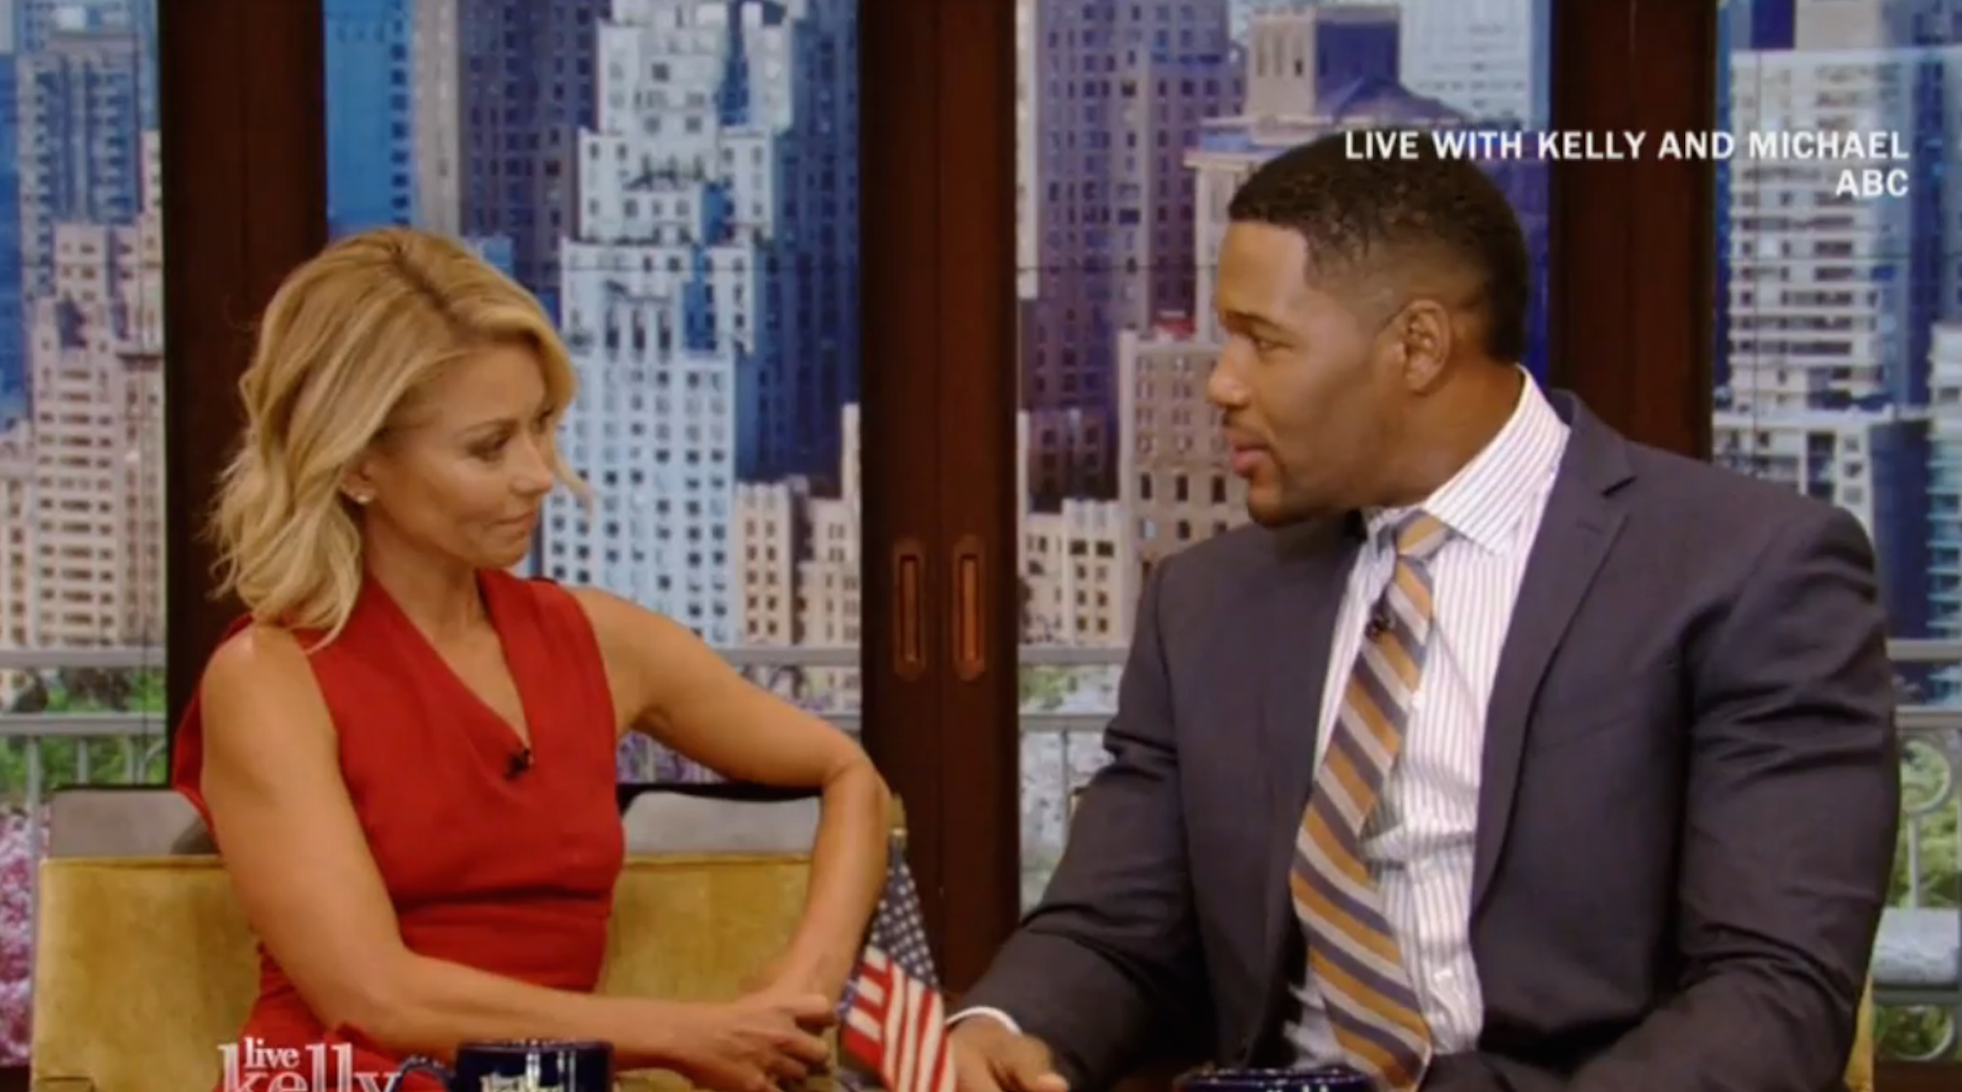 WATCH: Kelly Ripa opens up about Michael Strahan's big news for first time